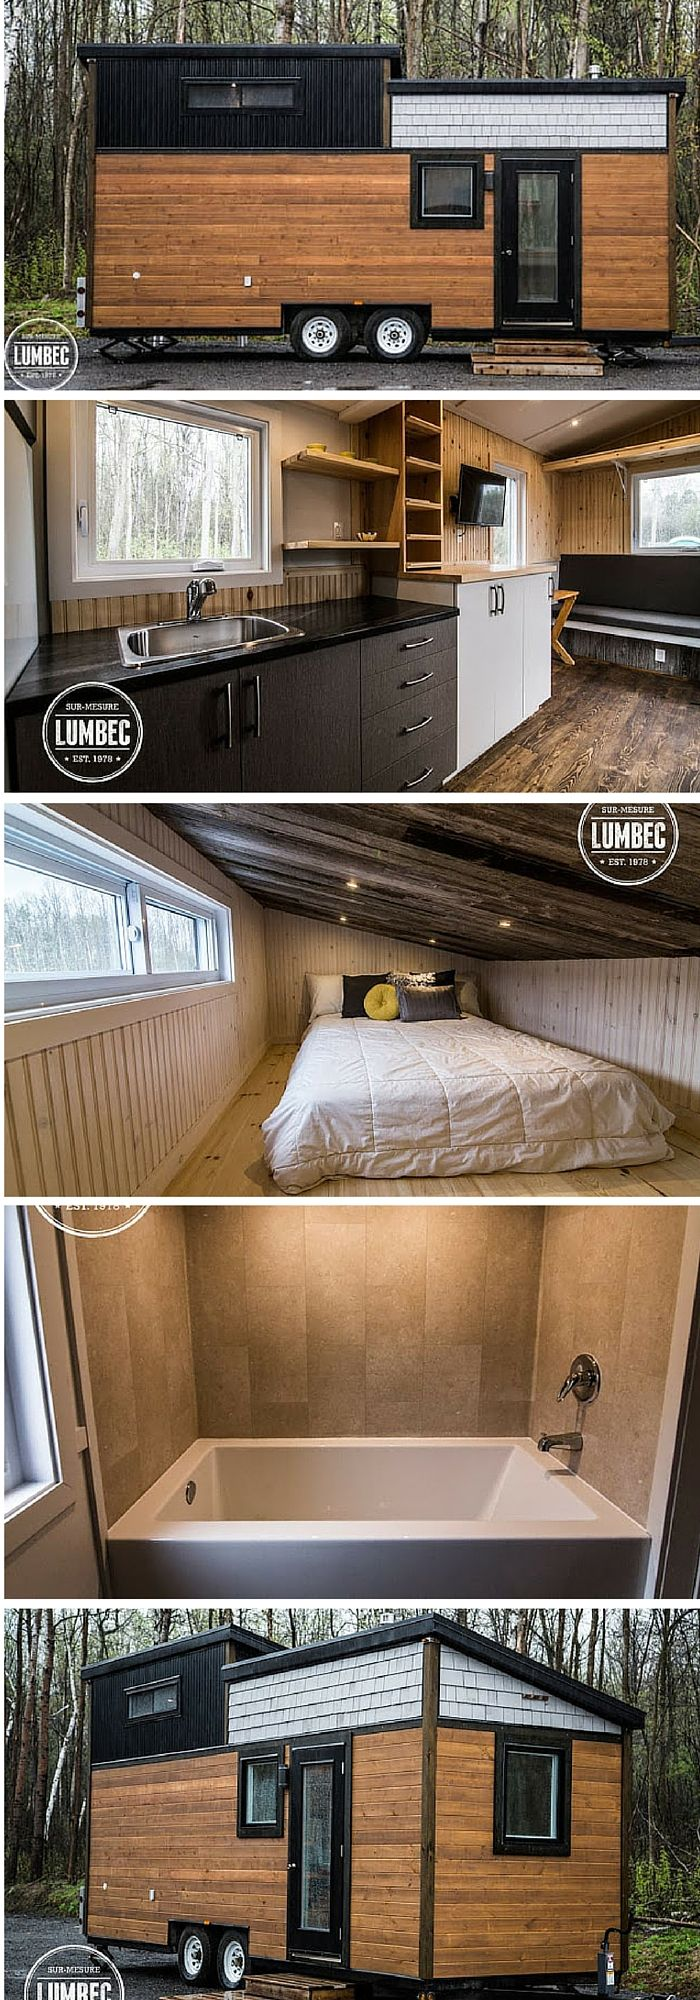 The TH2 from Tiny House Lumbec. A 204 sq ft tiny house made in Quebec, Canada.